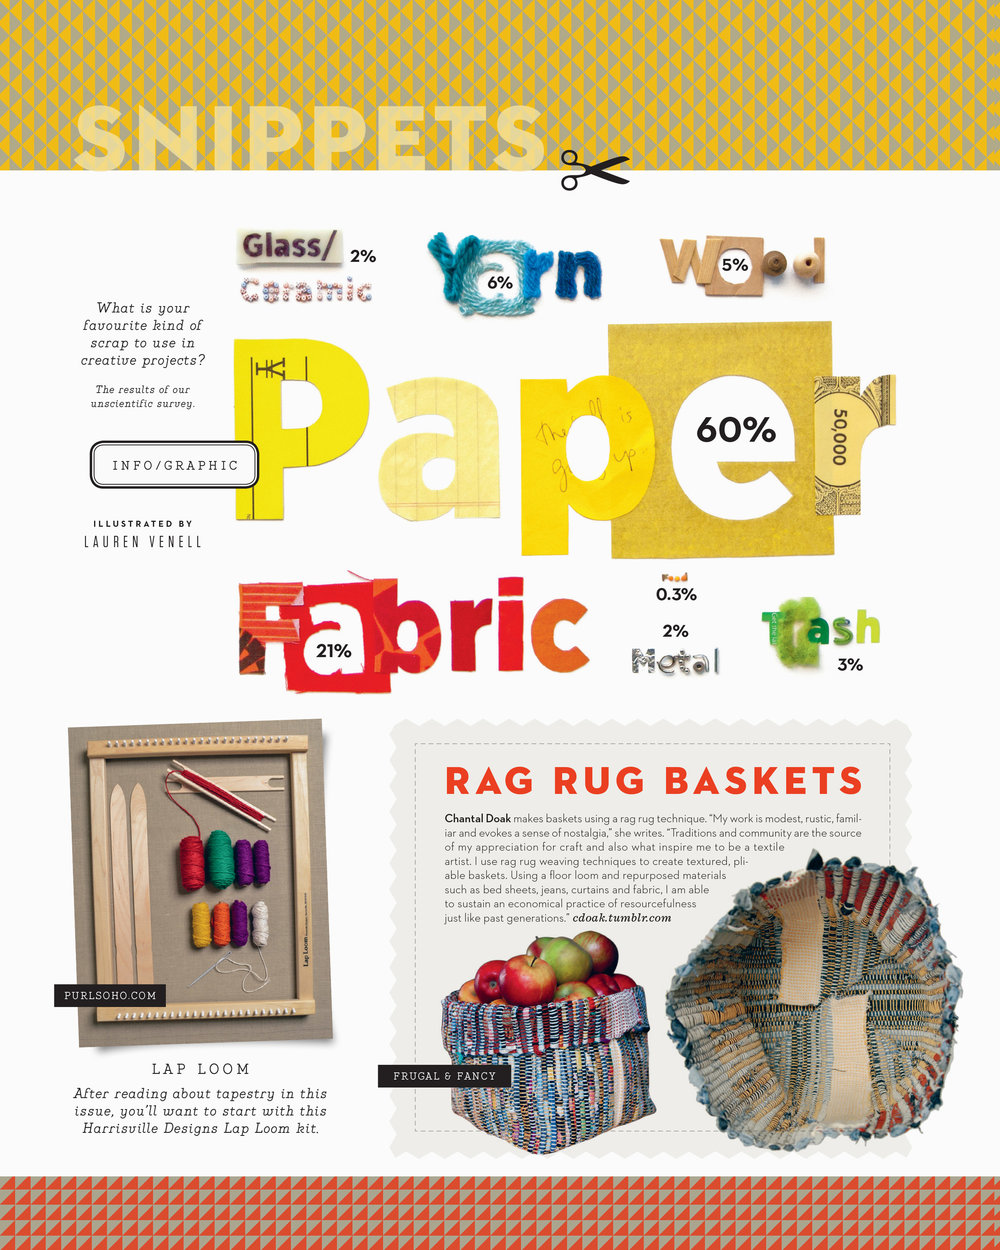 Scrap Materials infographic - Paper, cotton fabric, wood, yarn, glass, glass beads, coated steel wire, aluminum, acetate,rice, sprinkles, spices. Published in Uppercase magazine, Spring 2015 issue.